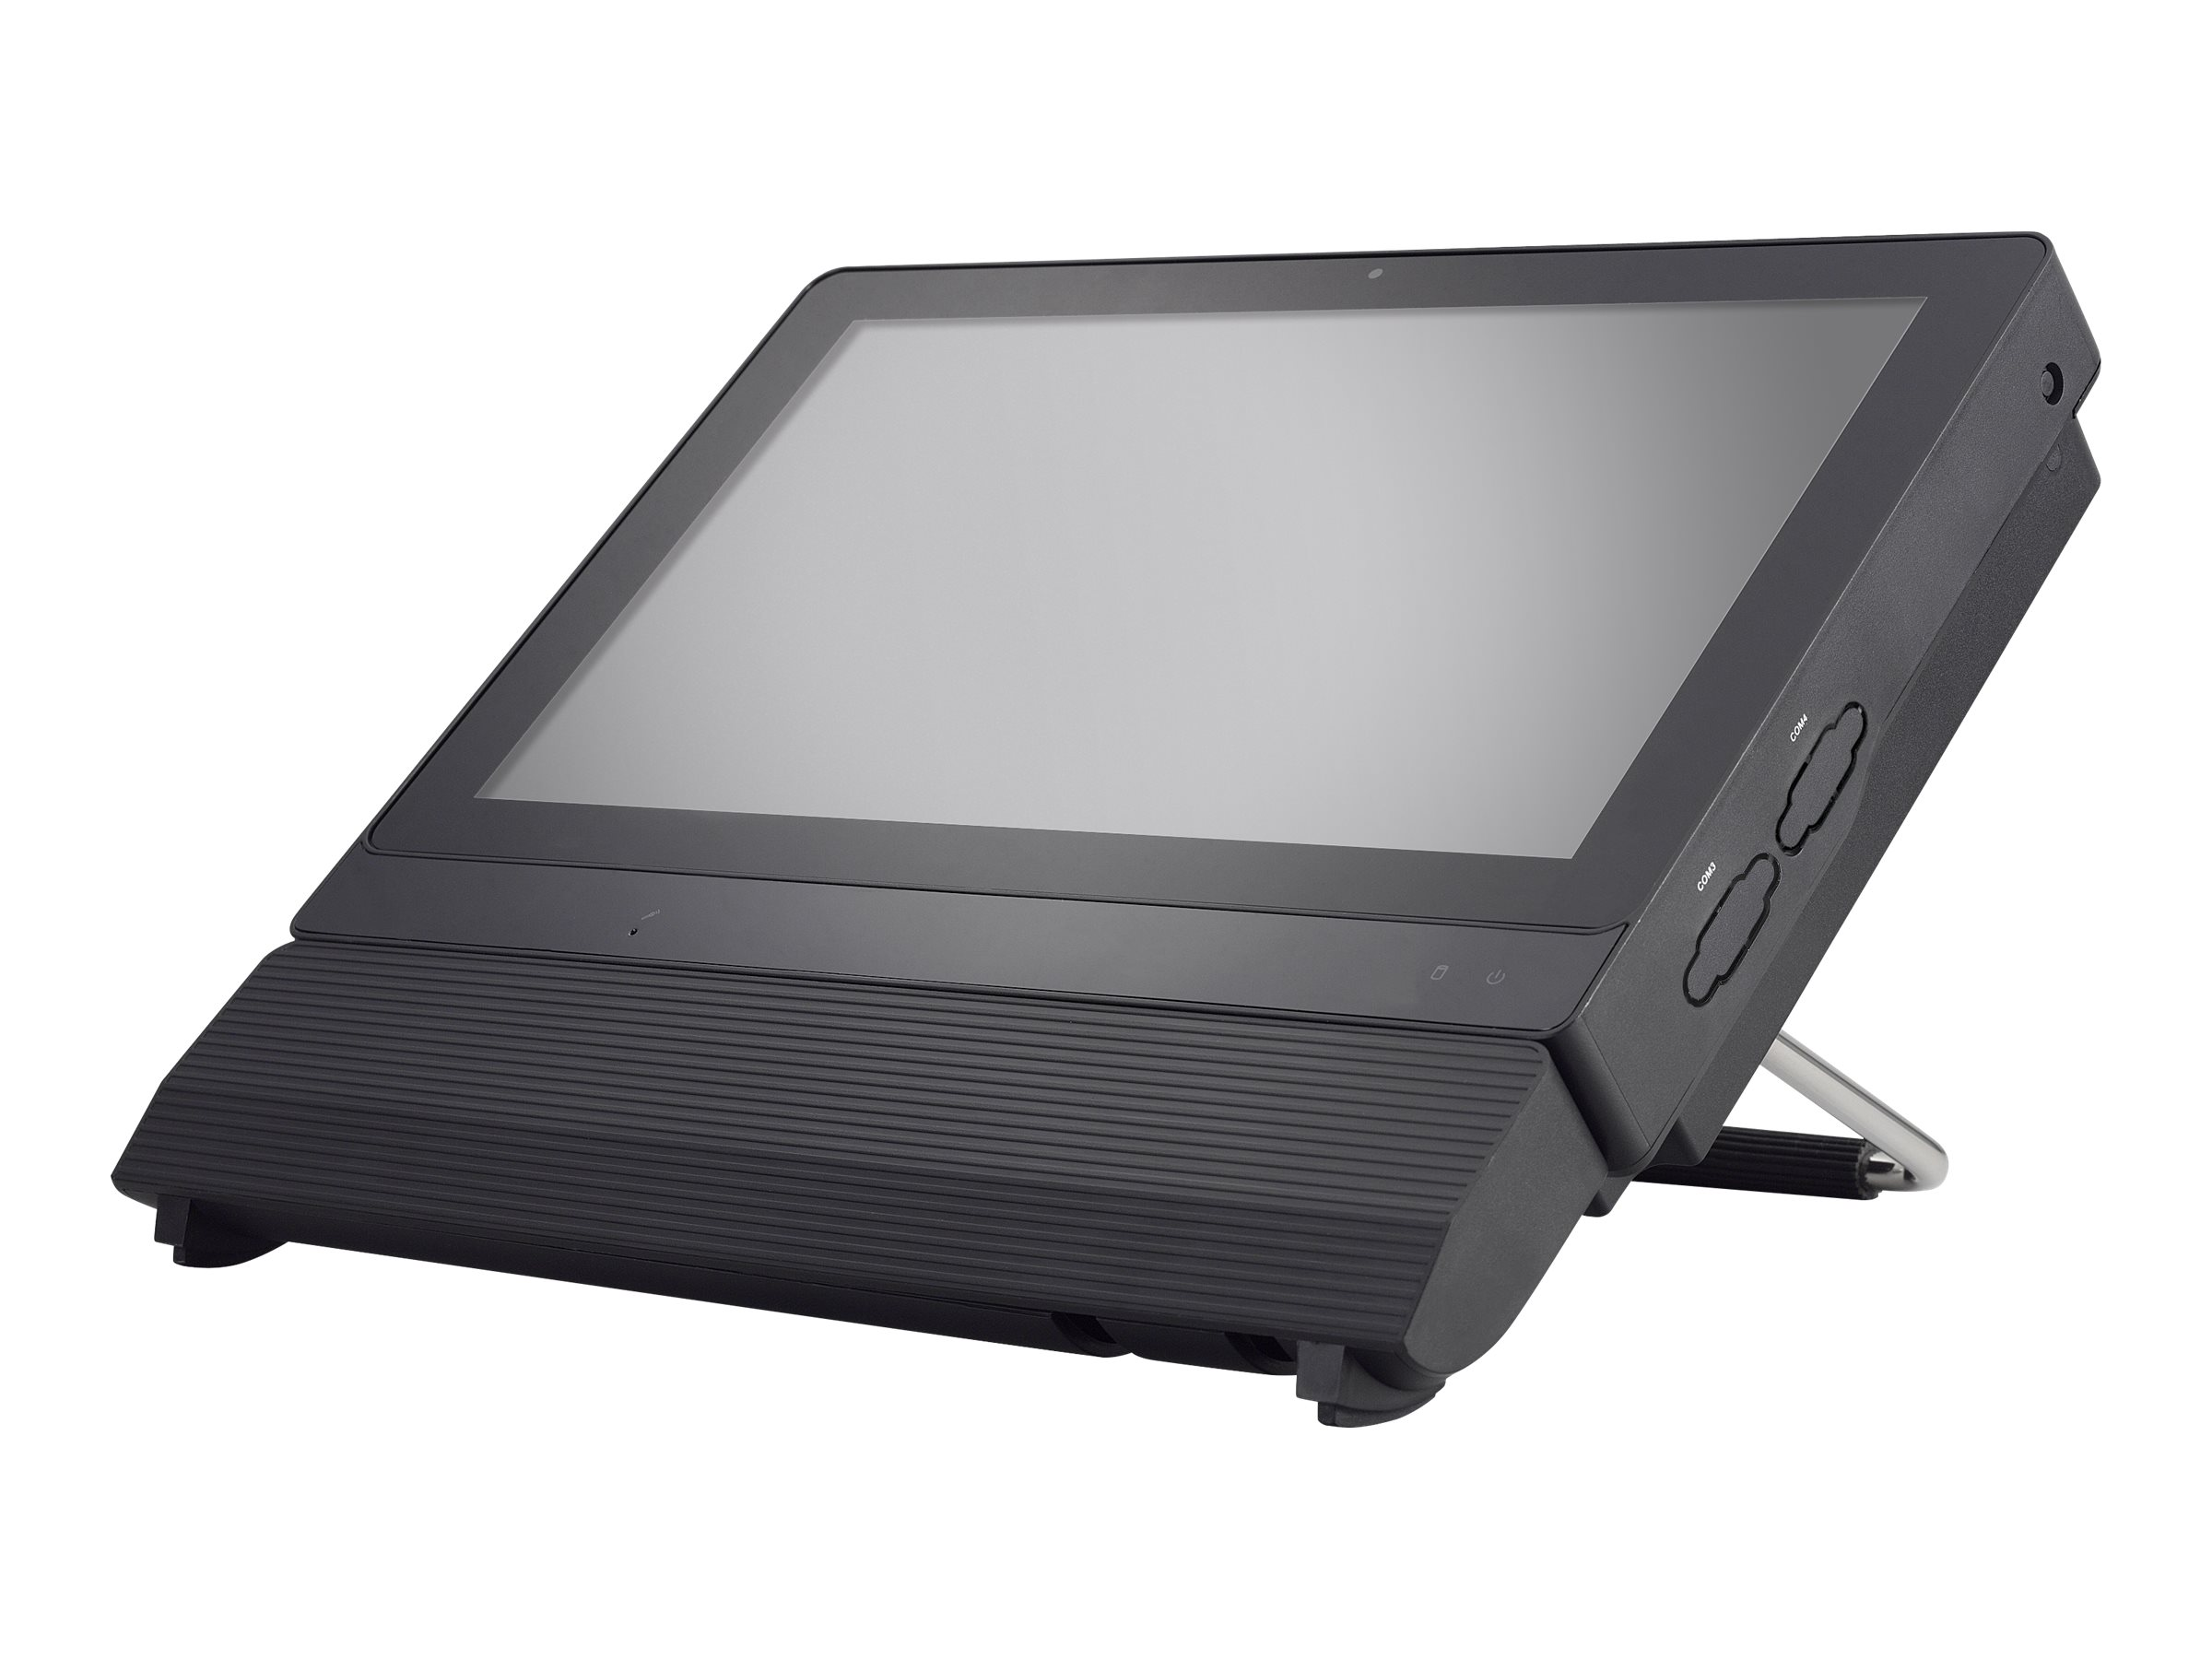 Shuttle XPC P20U - Barebone - All-in-One (Komplettlösung) - 1 x Celeron 3865U / 1.8 GHz ULV - HD Graphics 610 - GigE